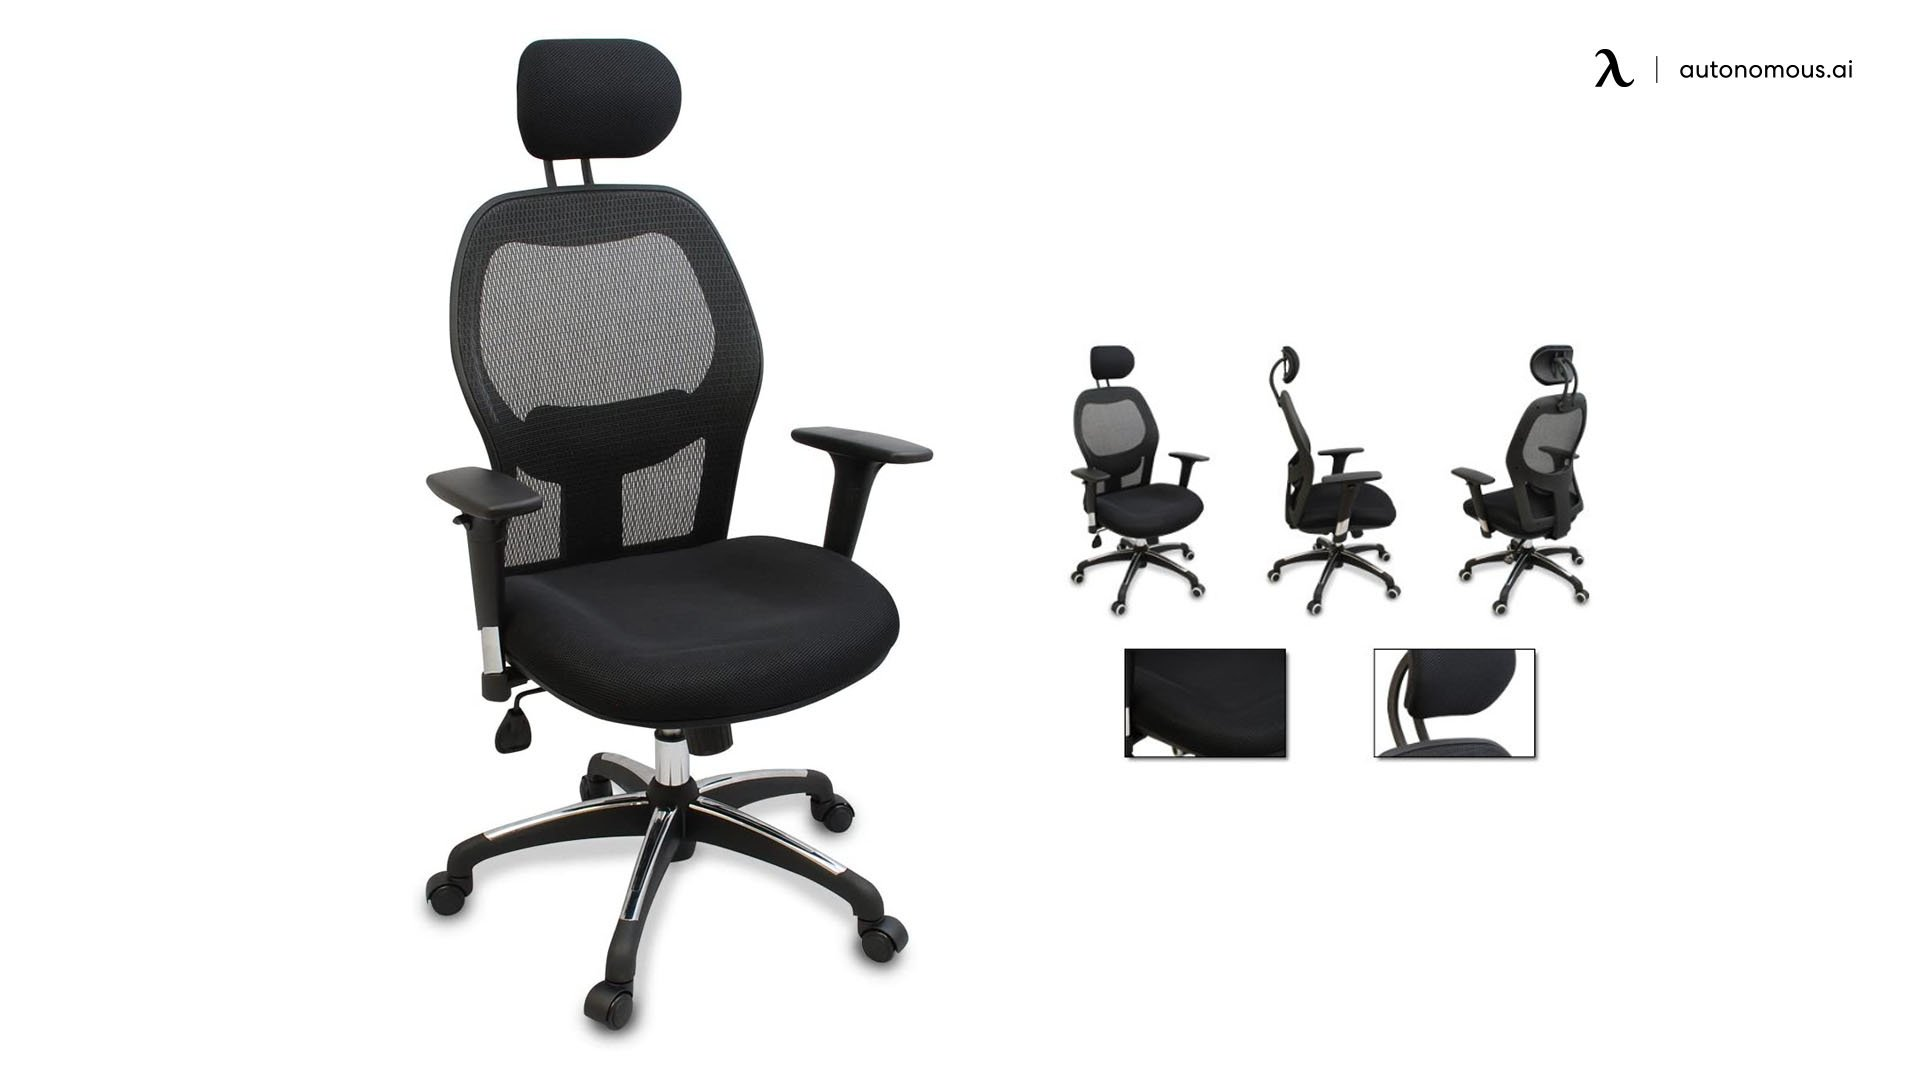 The Walker Adjustable Office Chair